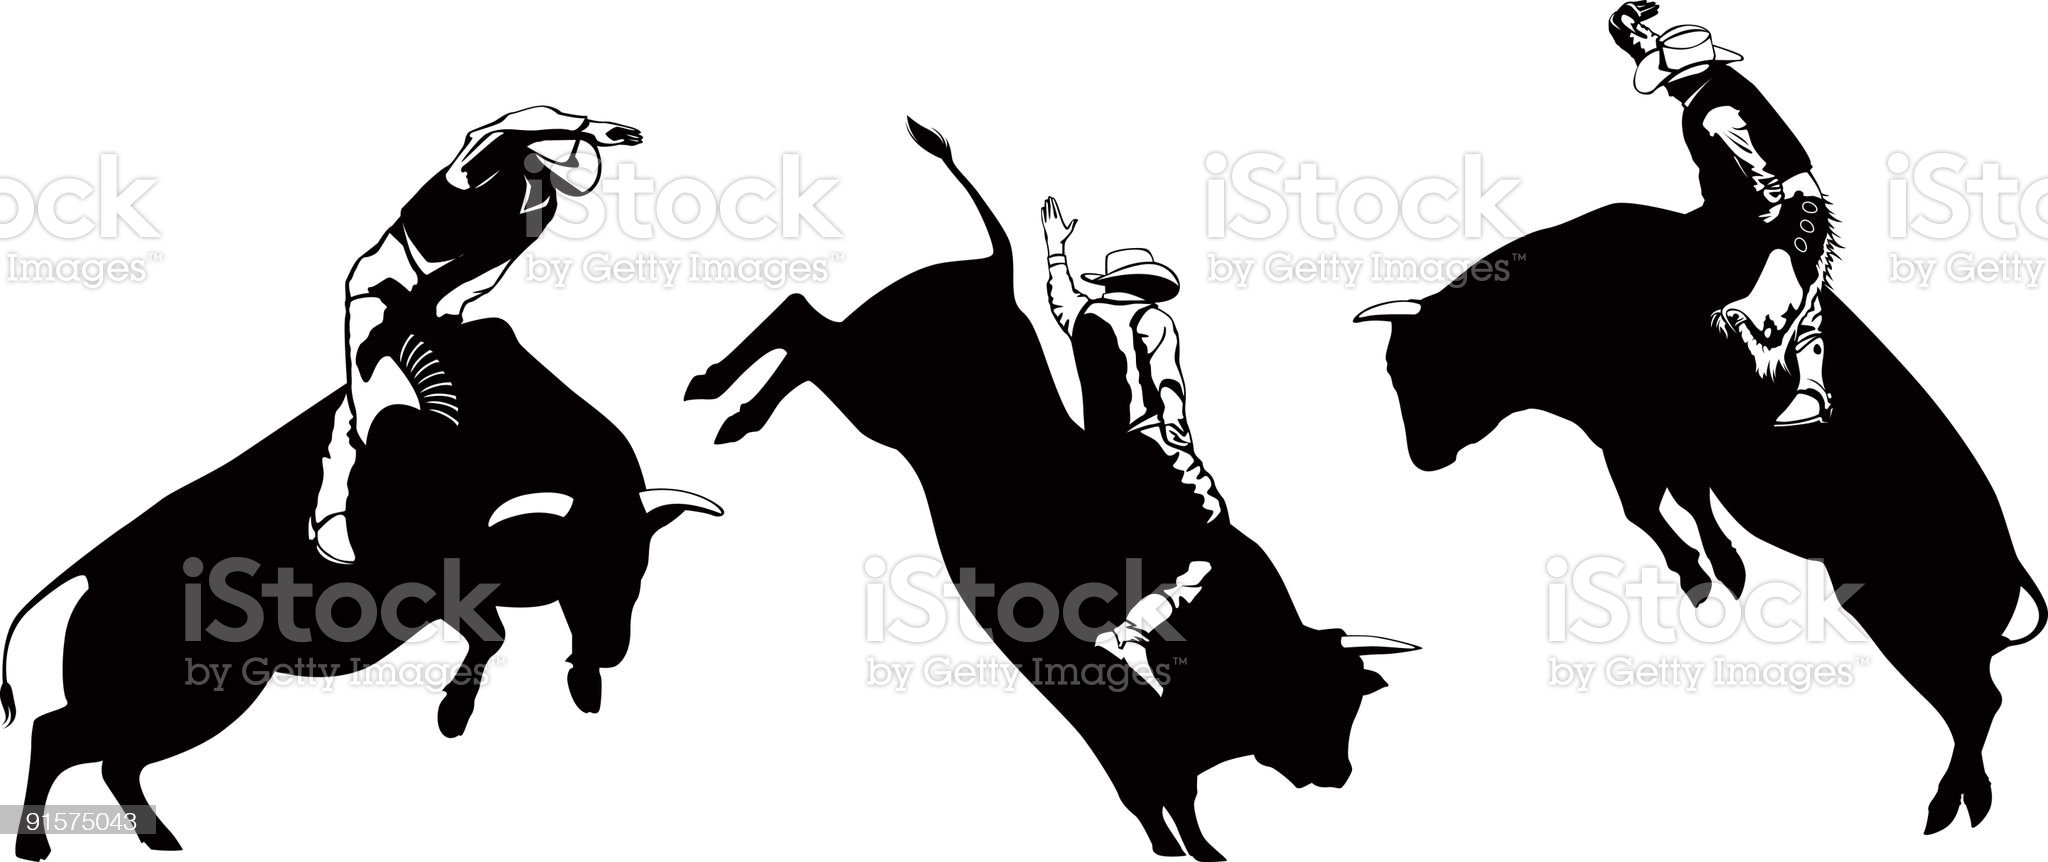 Cowboys Riding Leaping Bulls royalty-free stock vector art